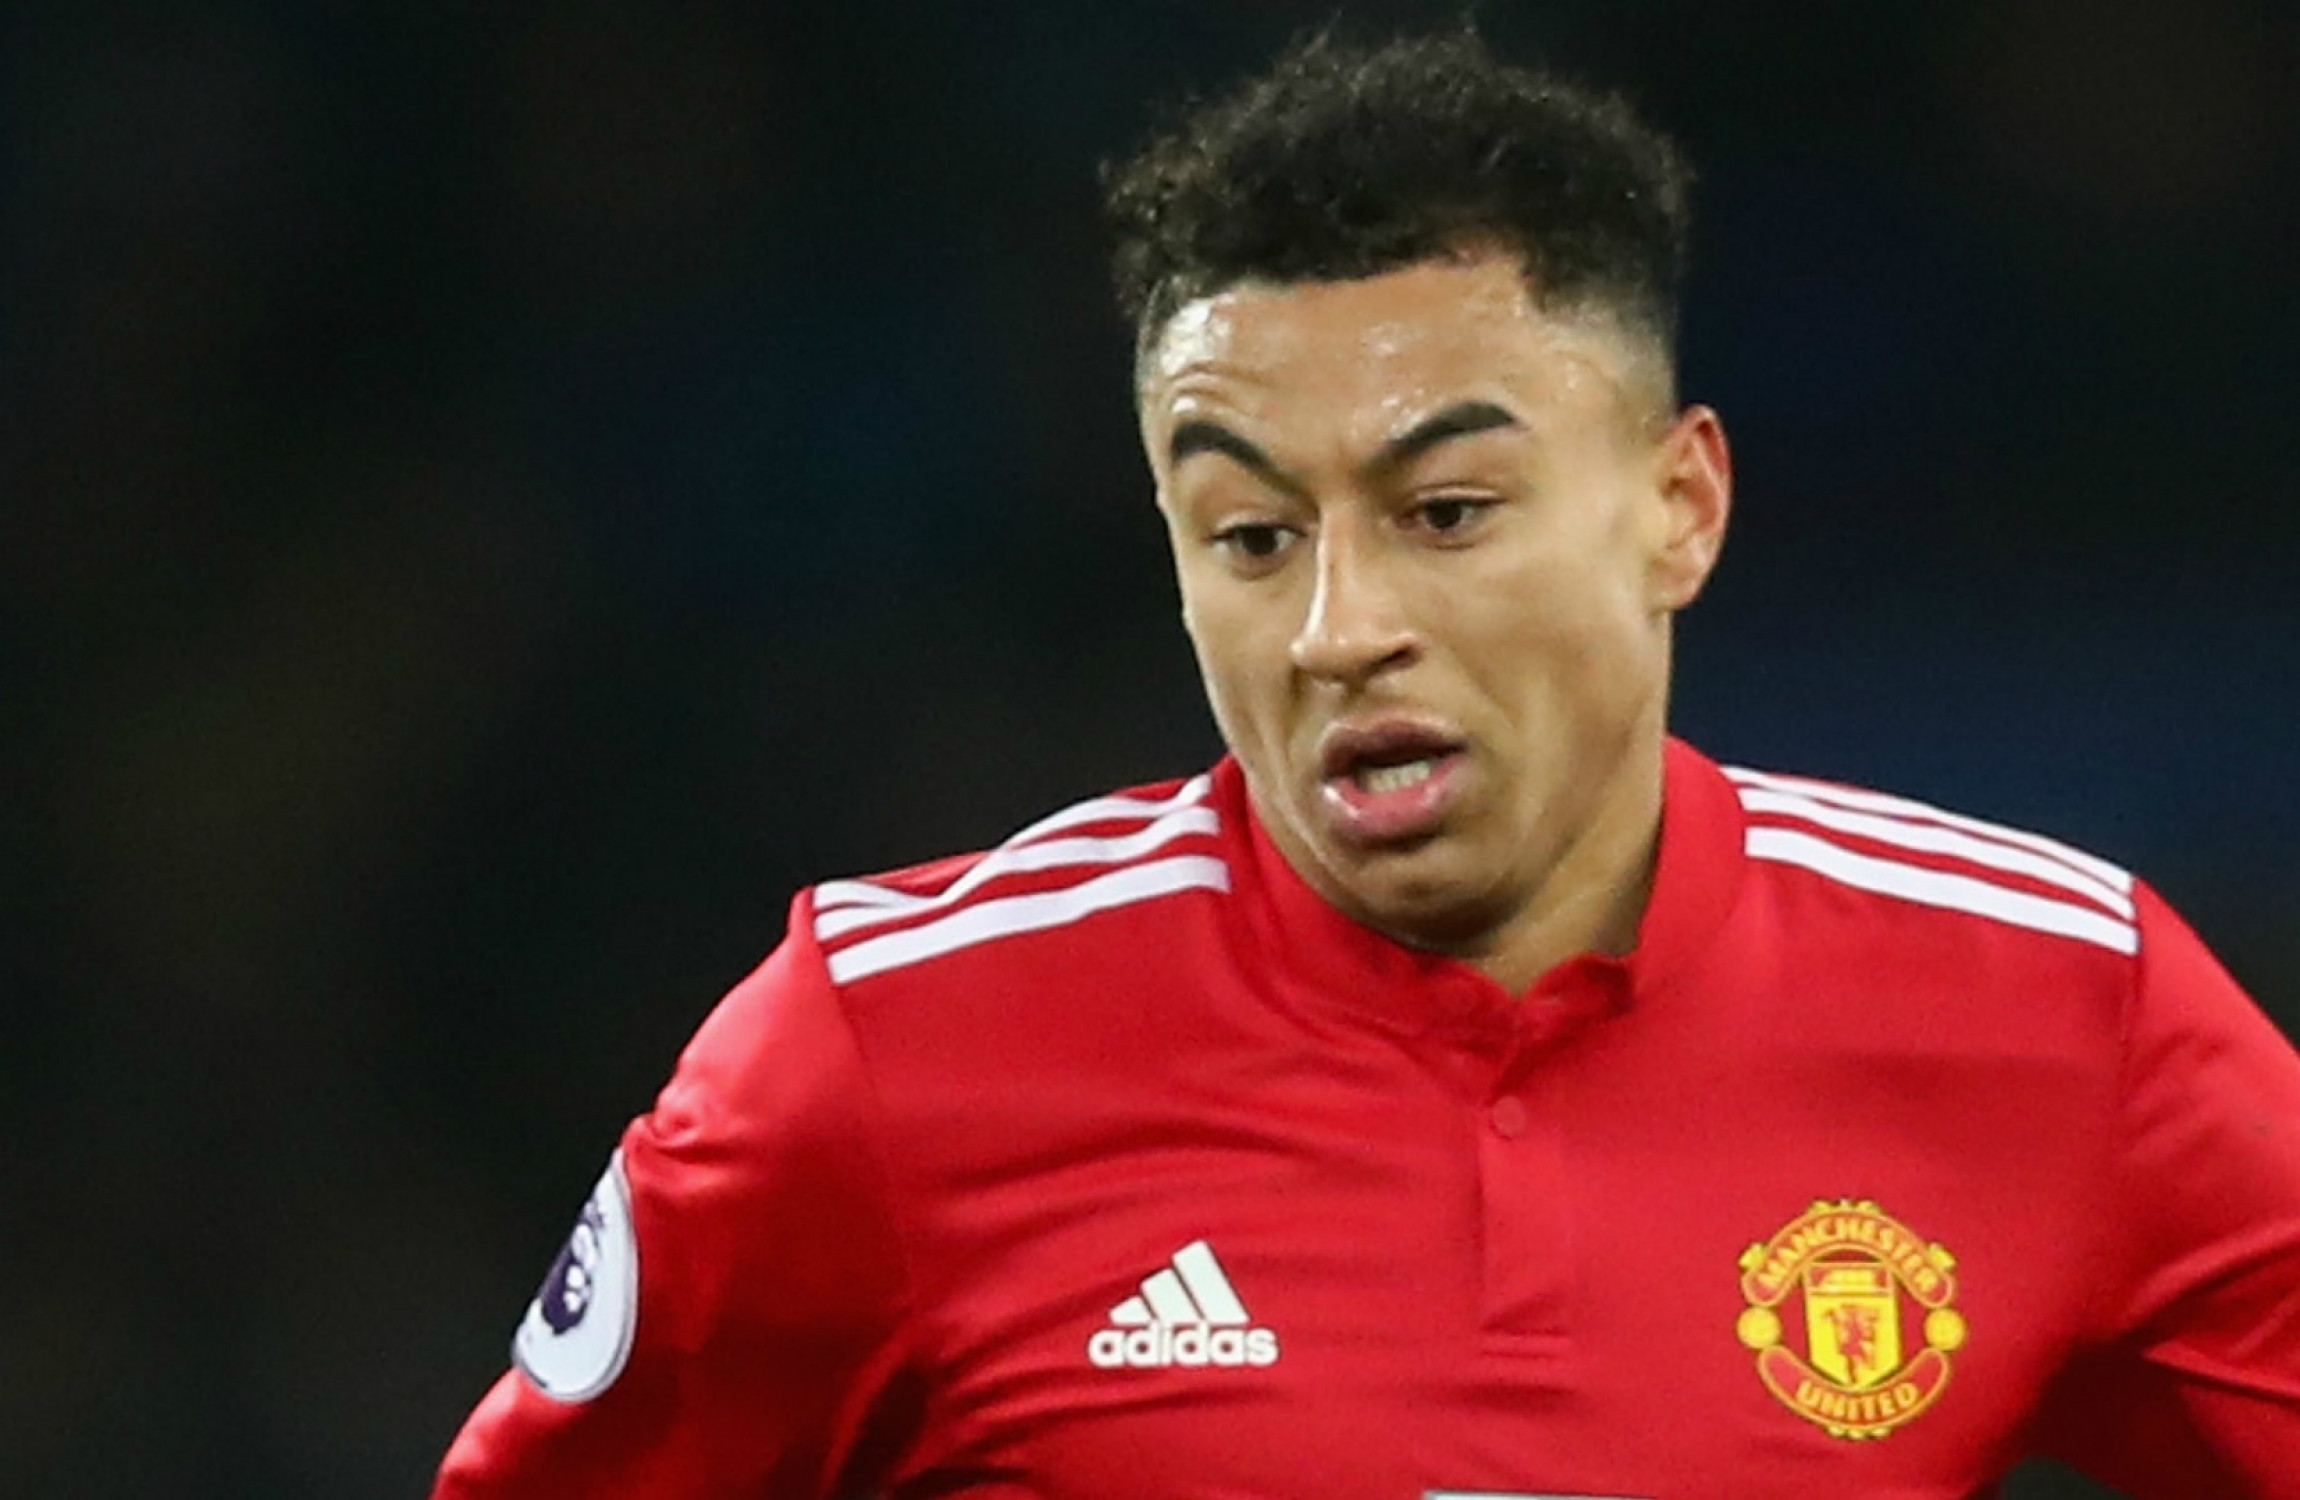 Jesse Lingard Sorry for 'Totally Unacceptable' Tweet During Munich Memorial Service